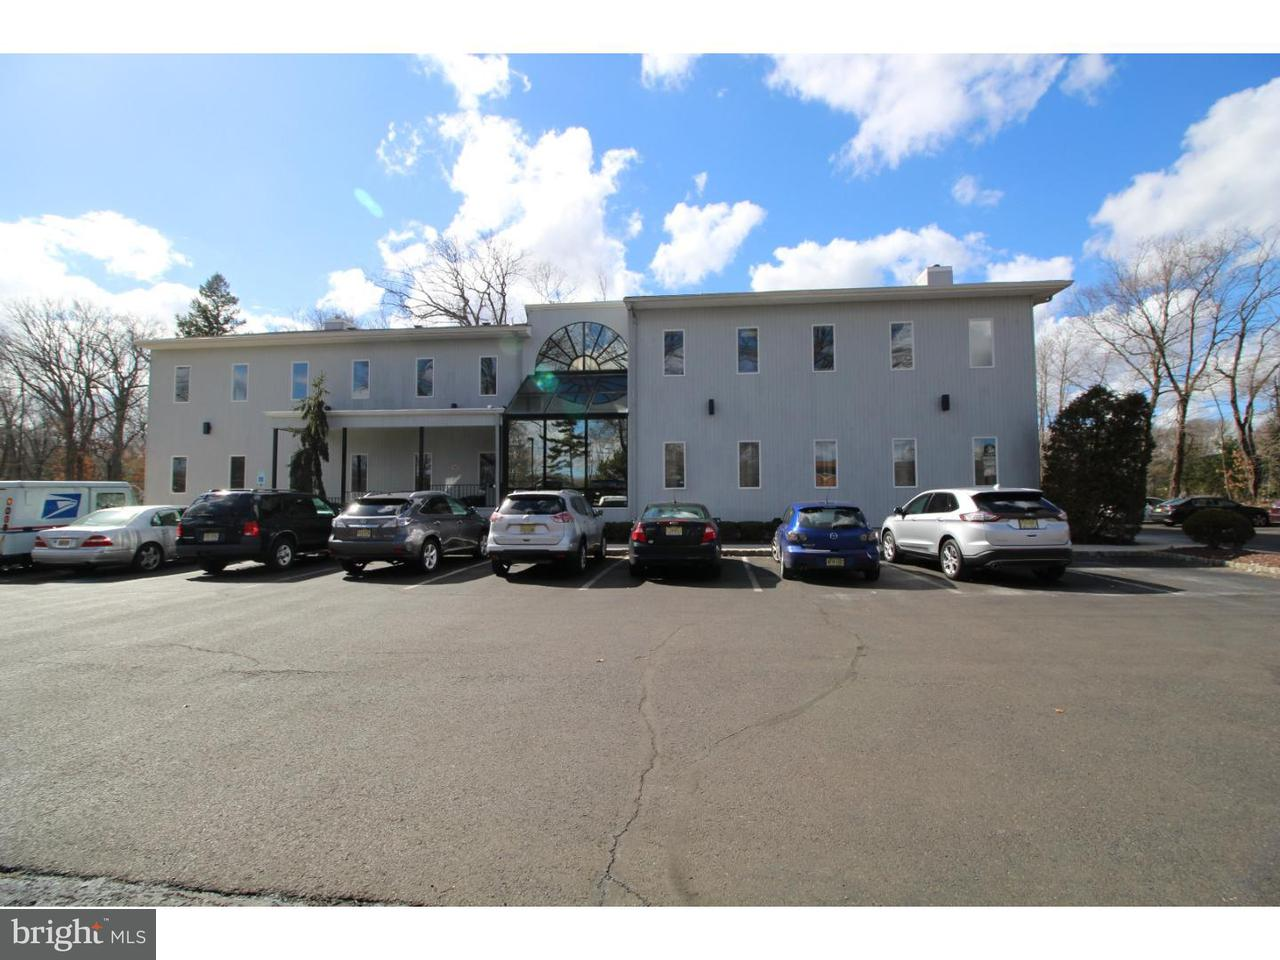 Single Family Home for Sale at 193 ROUTE 9 #STE 1B Englishtown, New Jersey 07726 United States